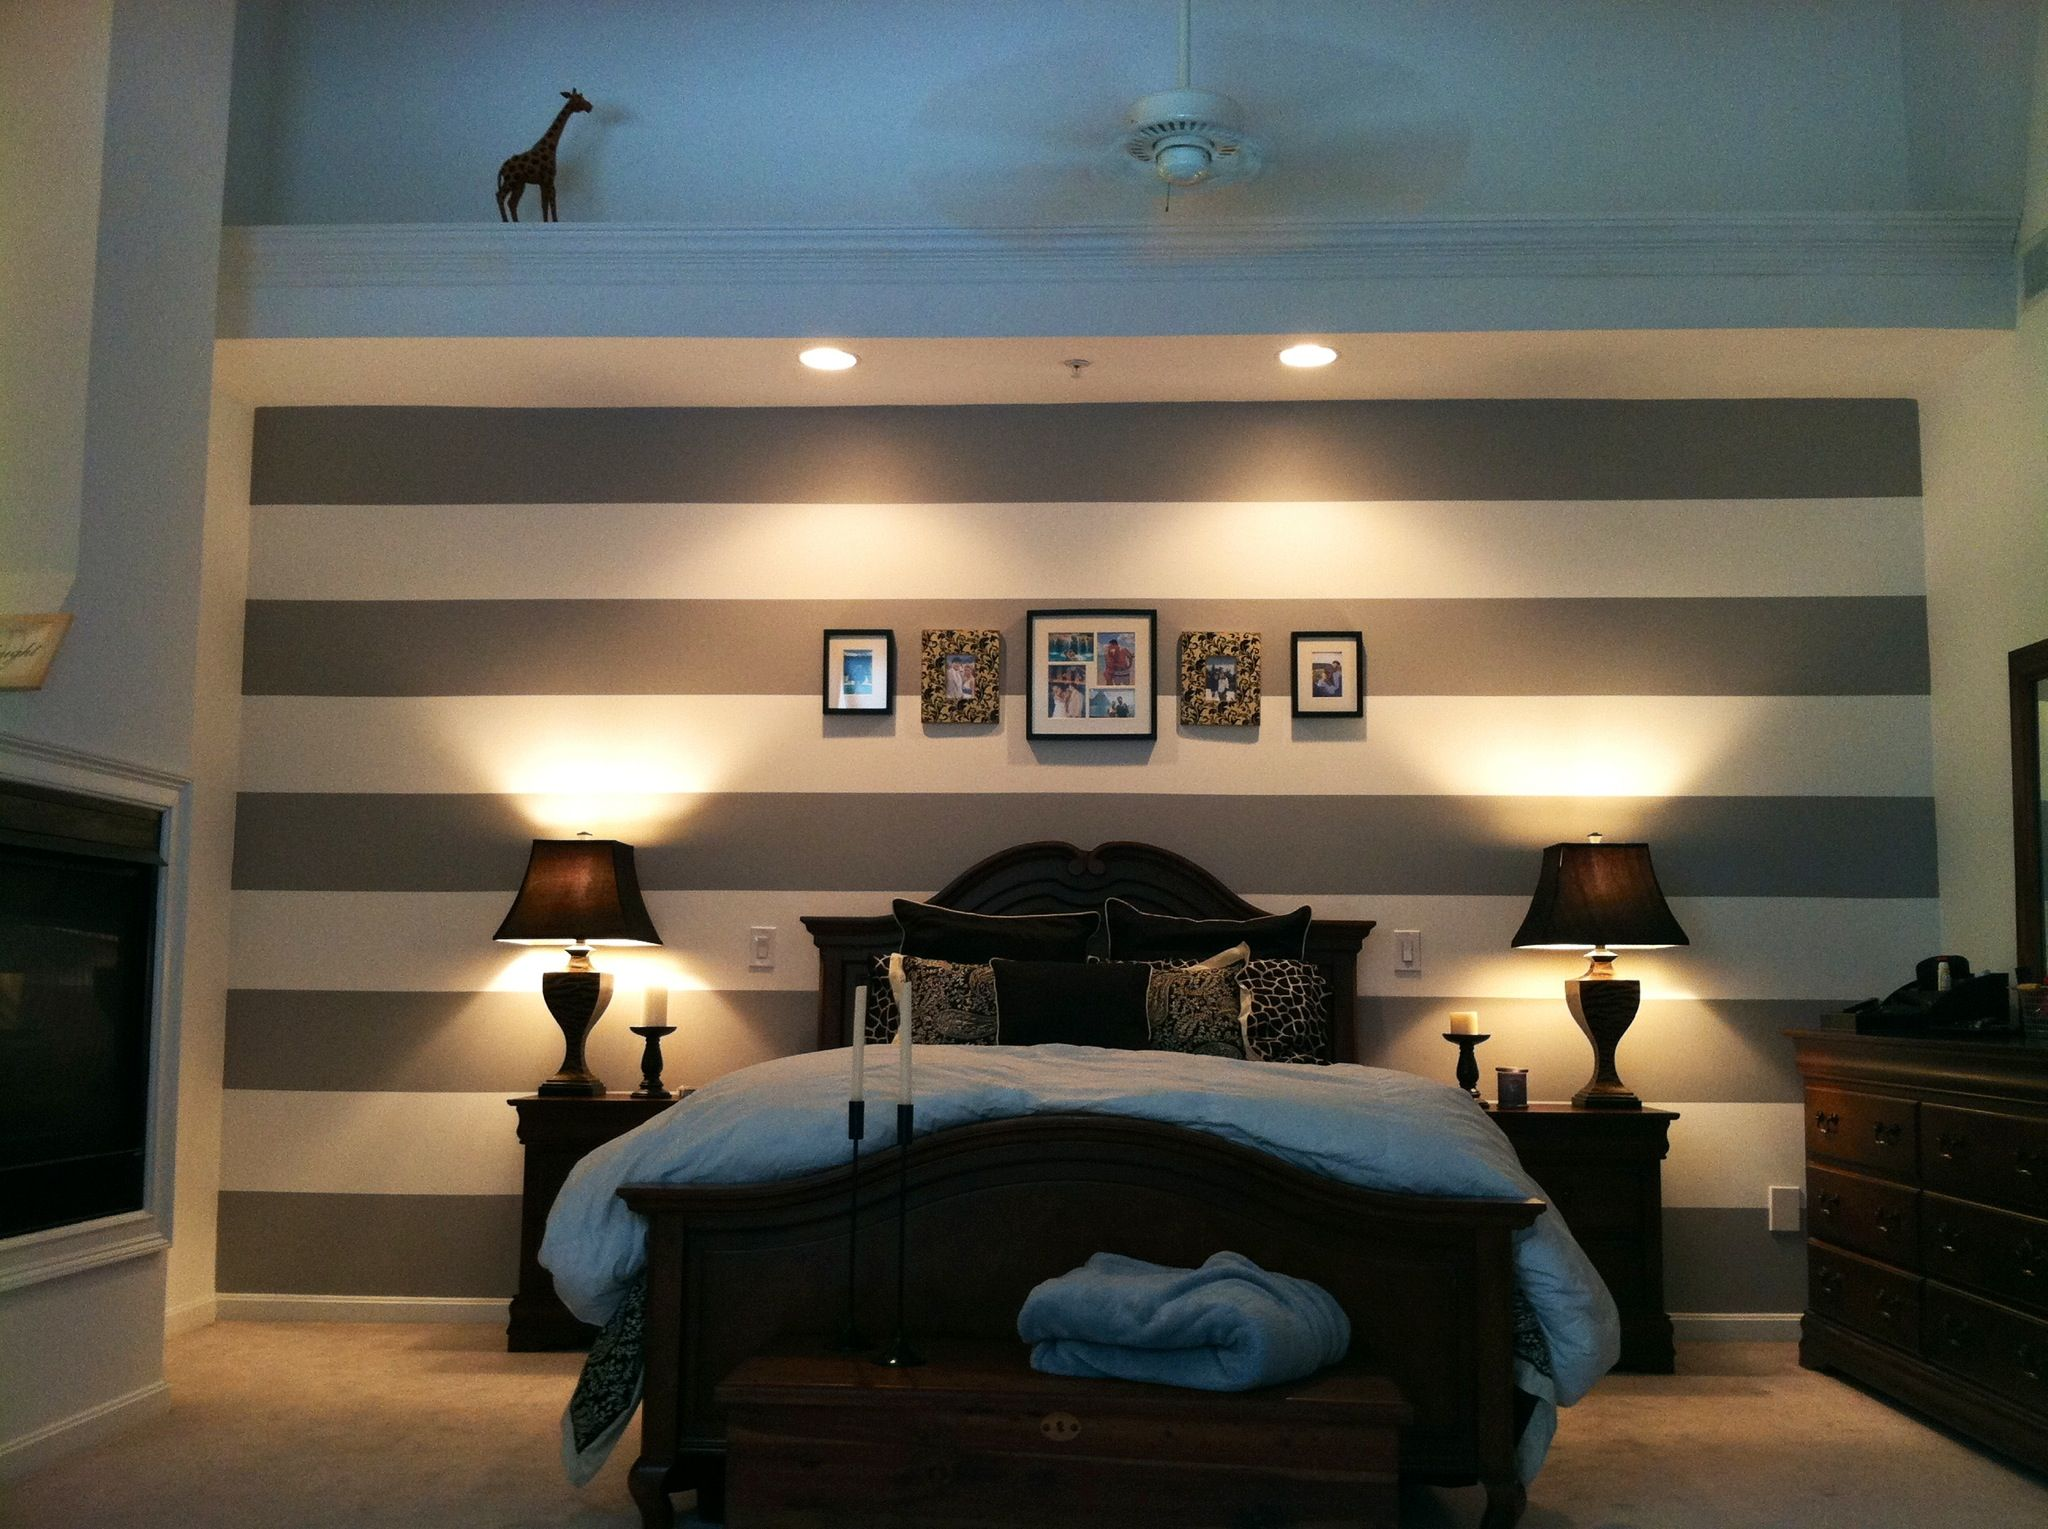 Behr pewter mug paint. Gray and white stripe accent wall